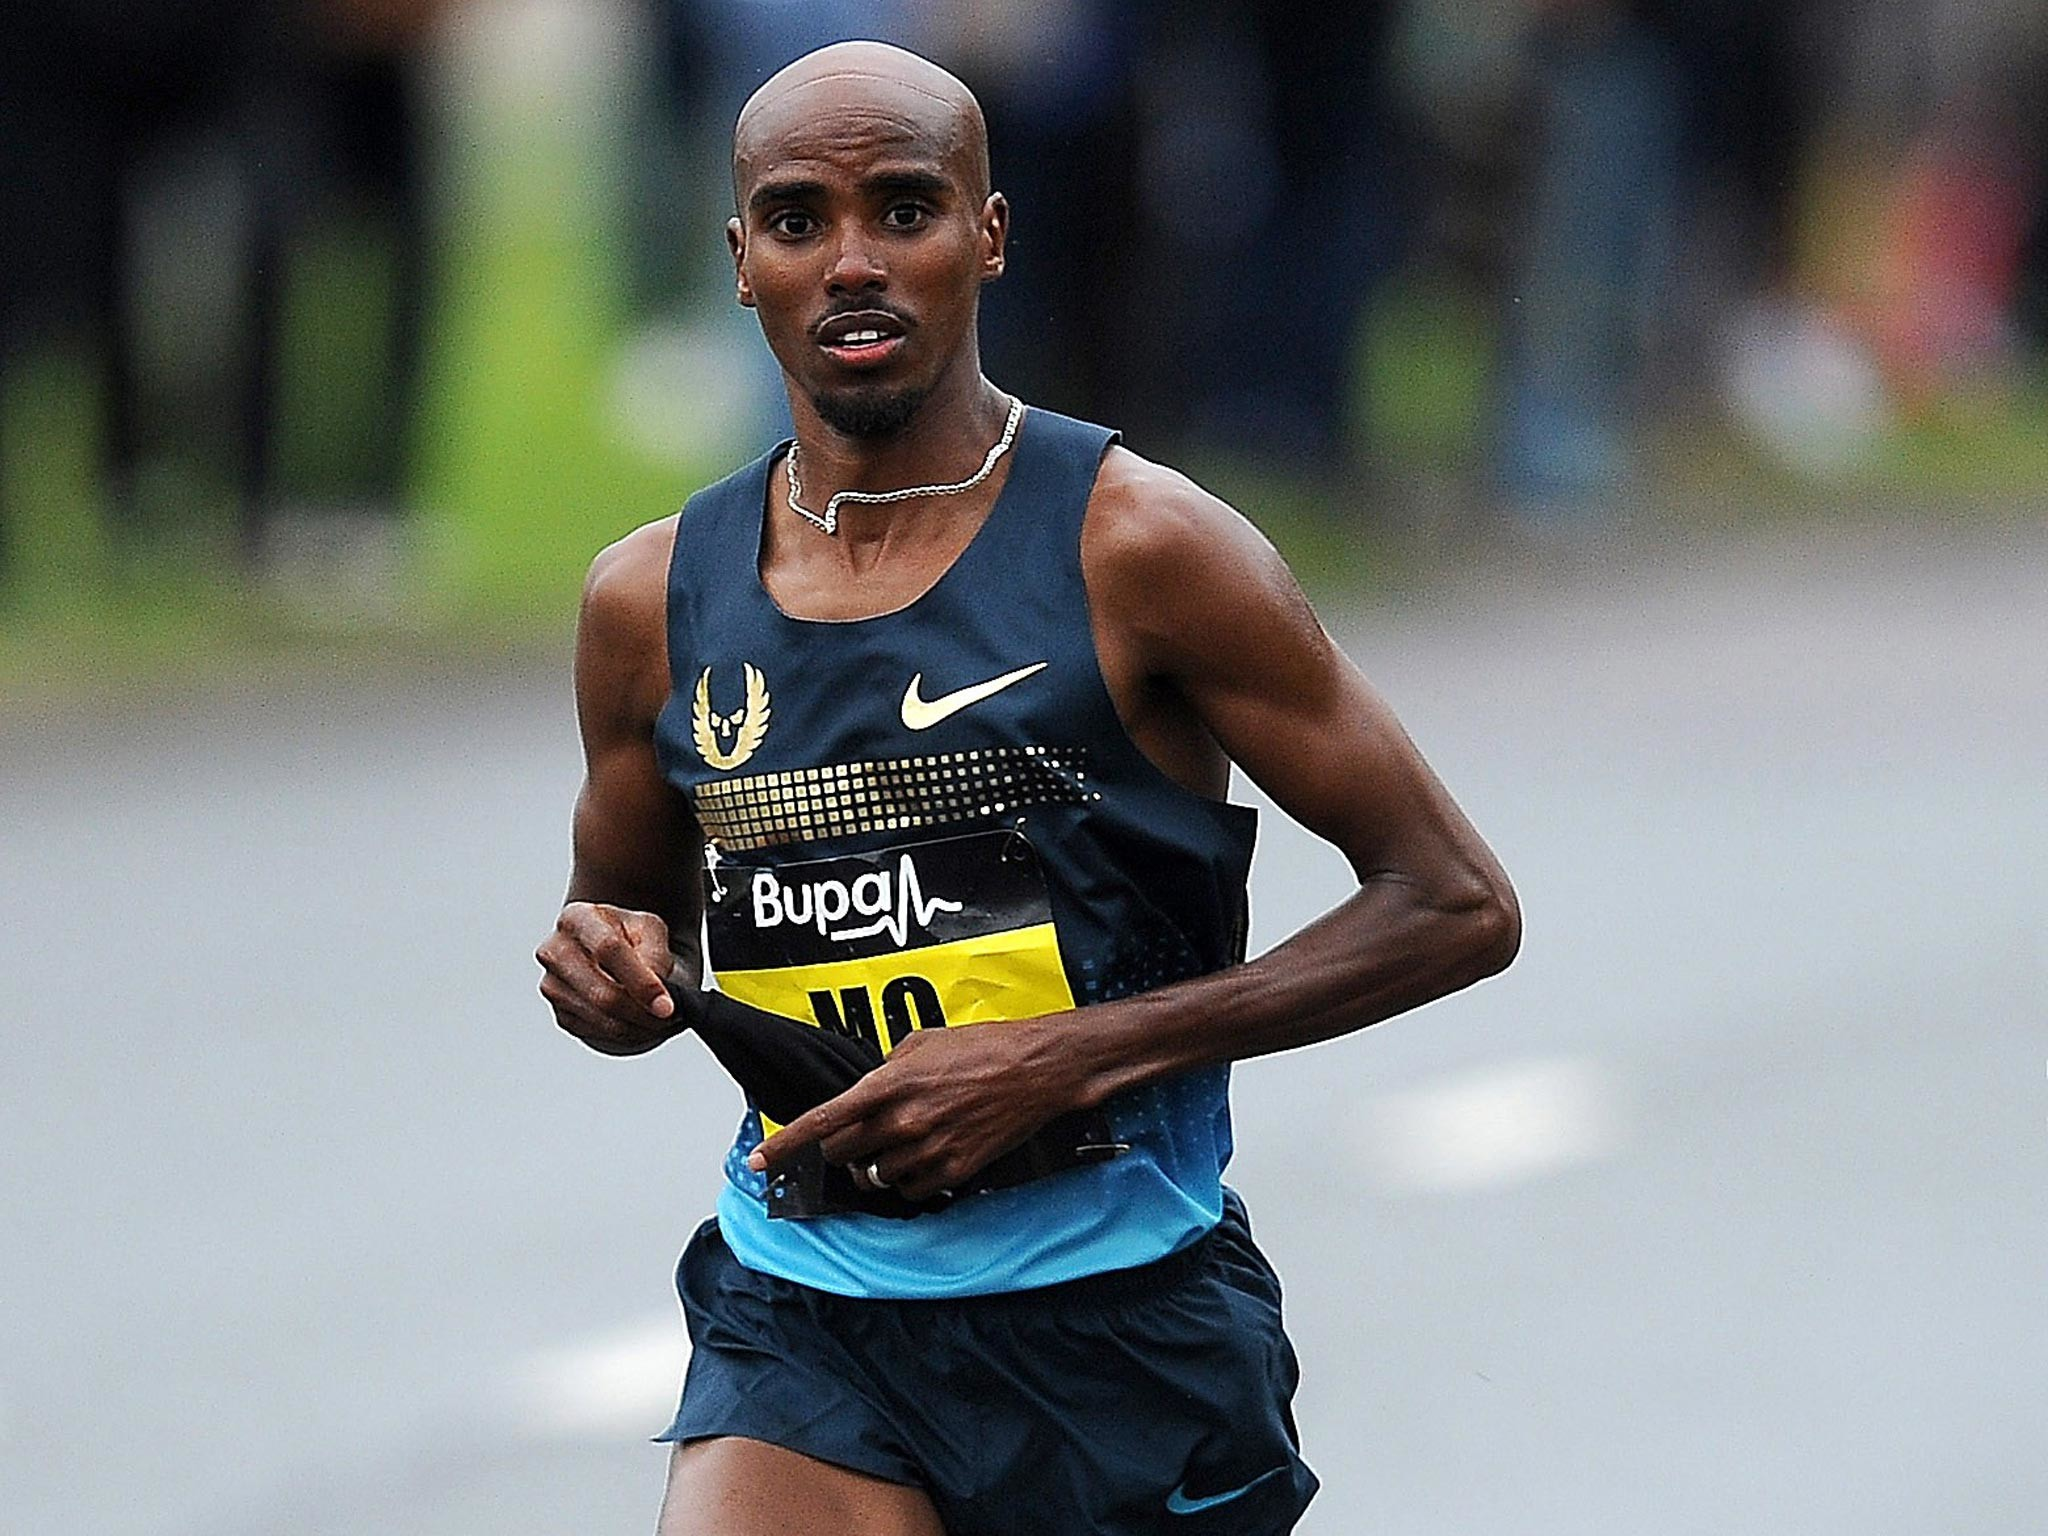 Mo Farah believes the Olympic Games will go ahead this summer and claims athletes have been told they will get Covid vaccines